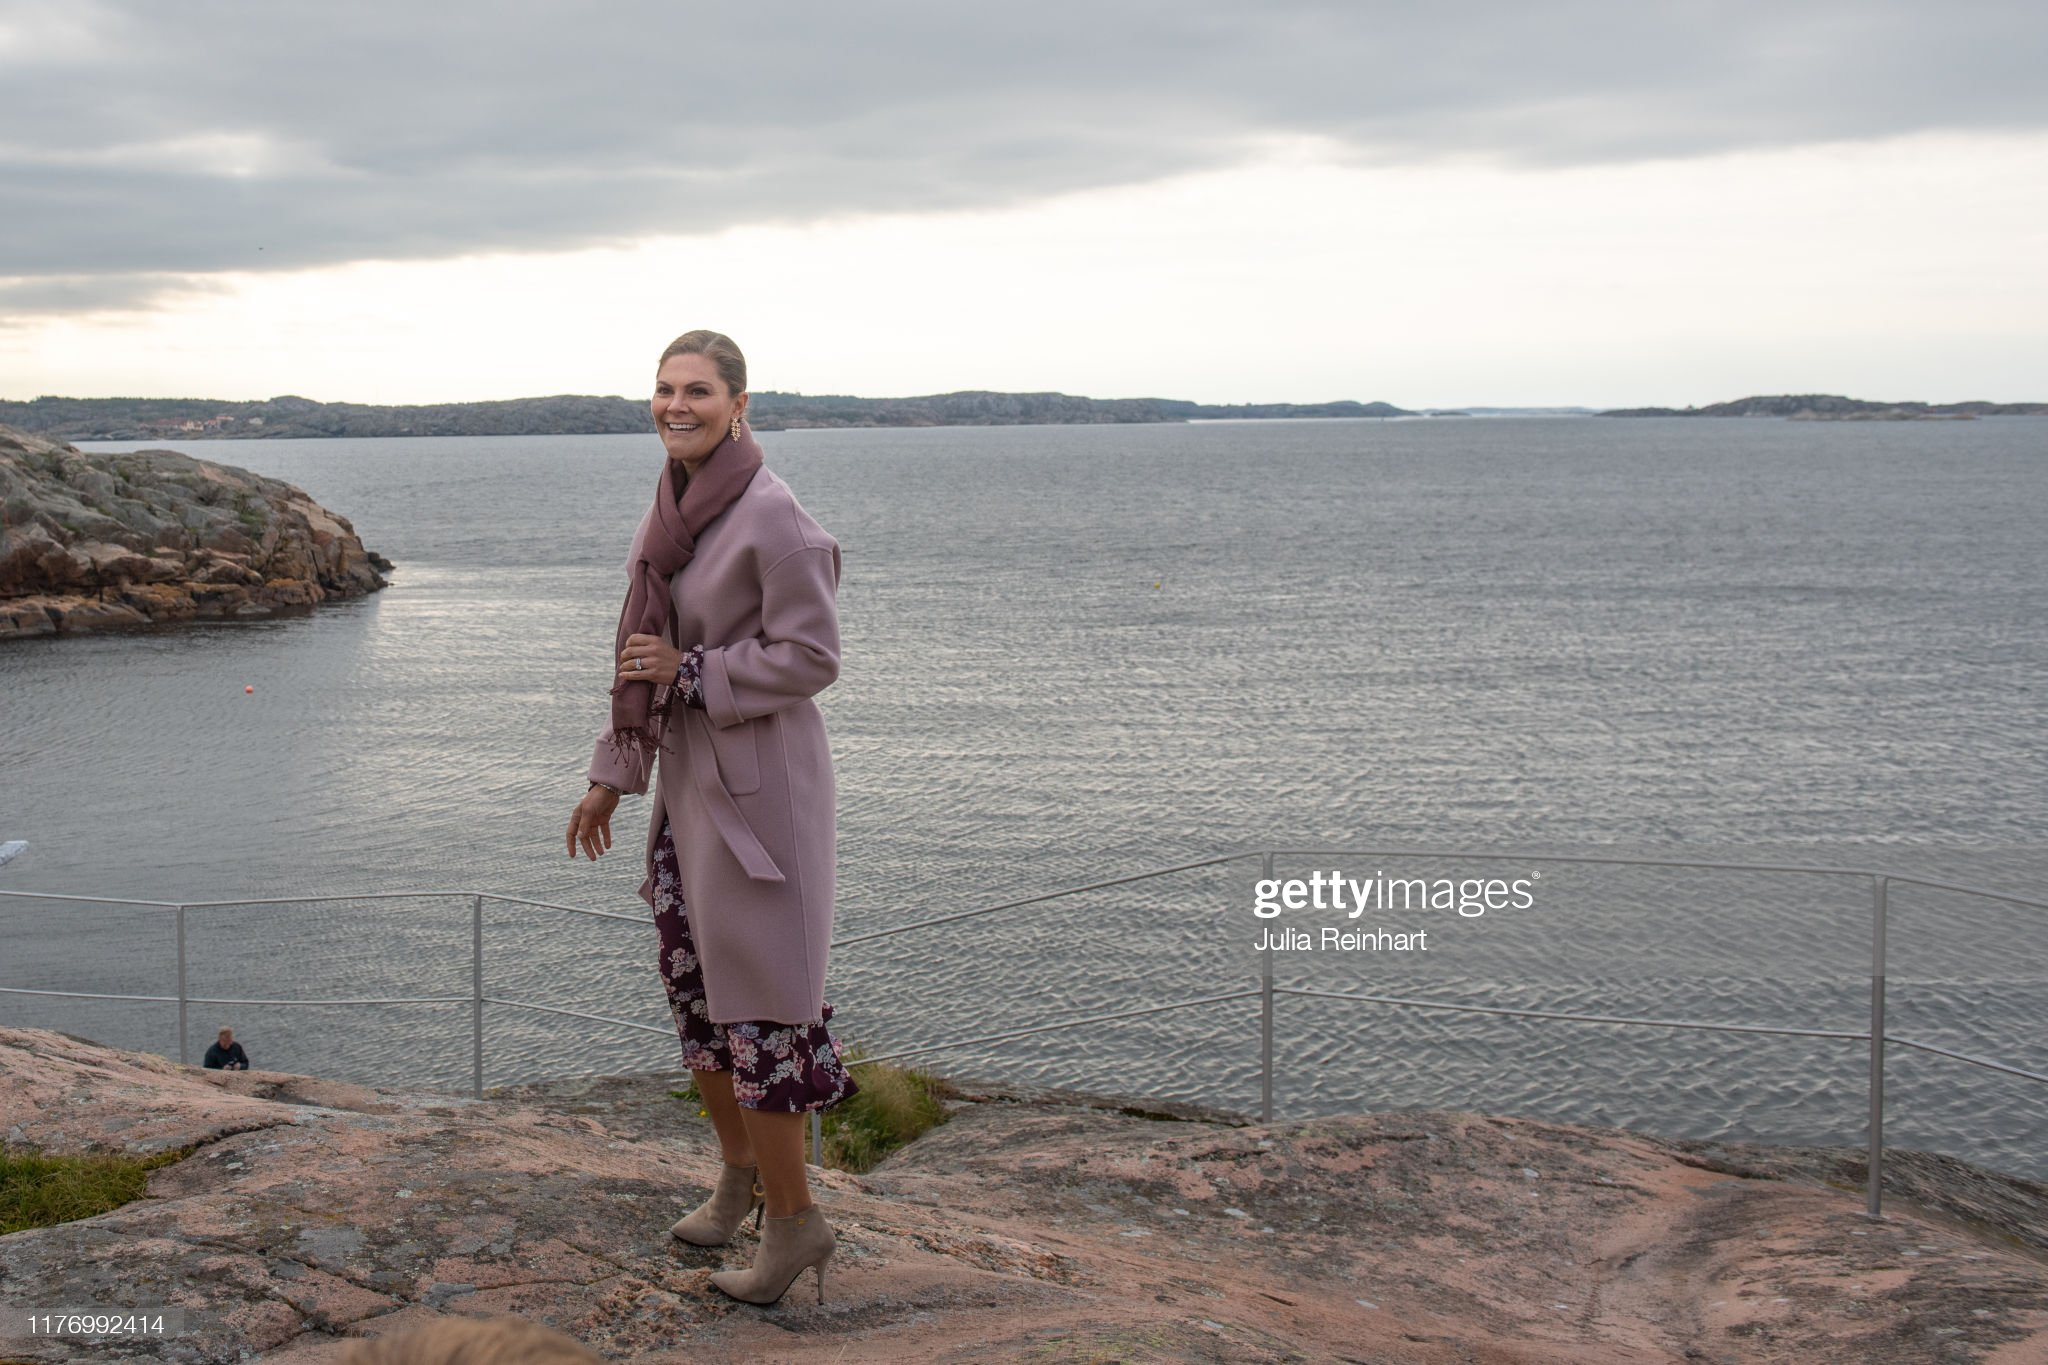 crown-princess-victoria-takes-in-the-scenery-of-lysekil-bay-during-picture-id1176992414